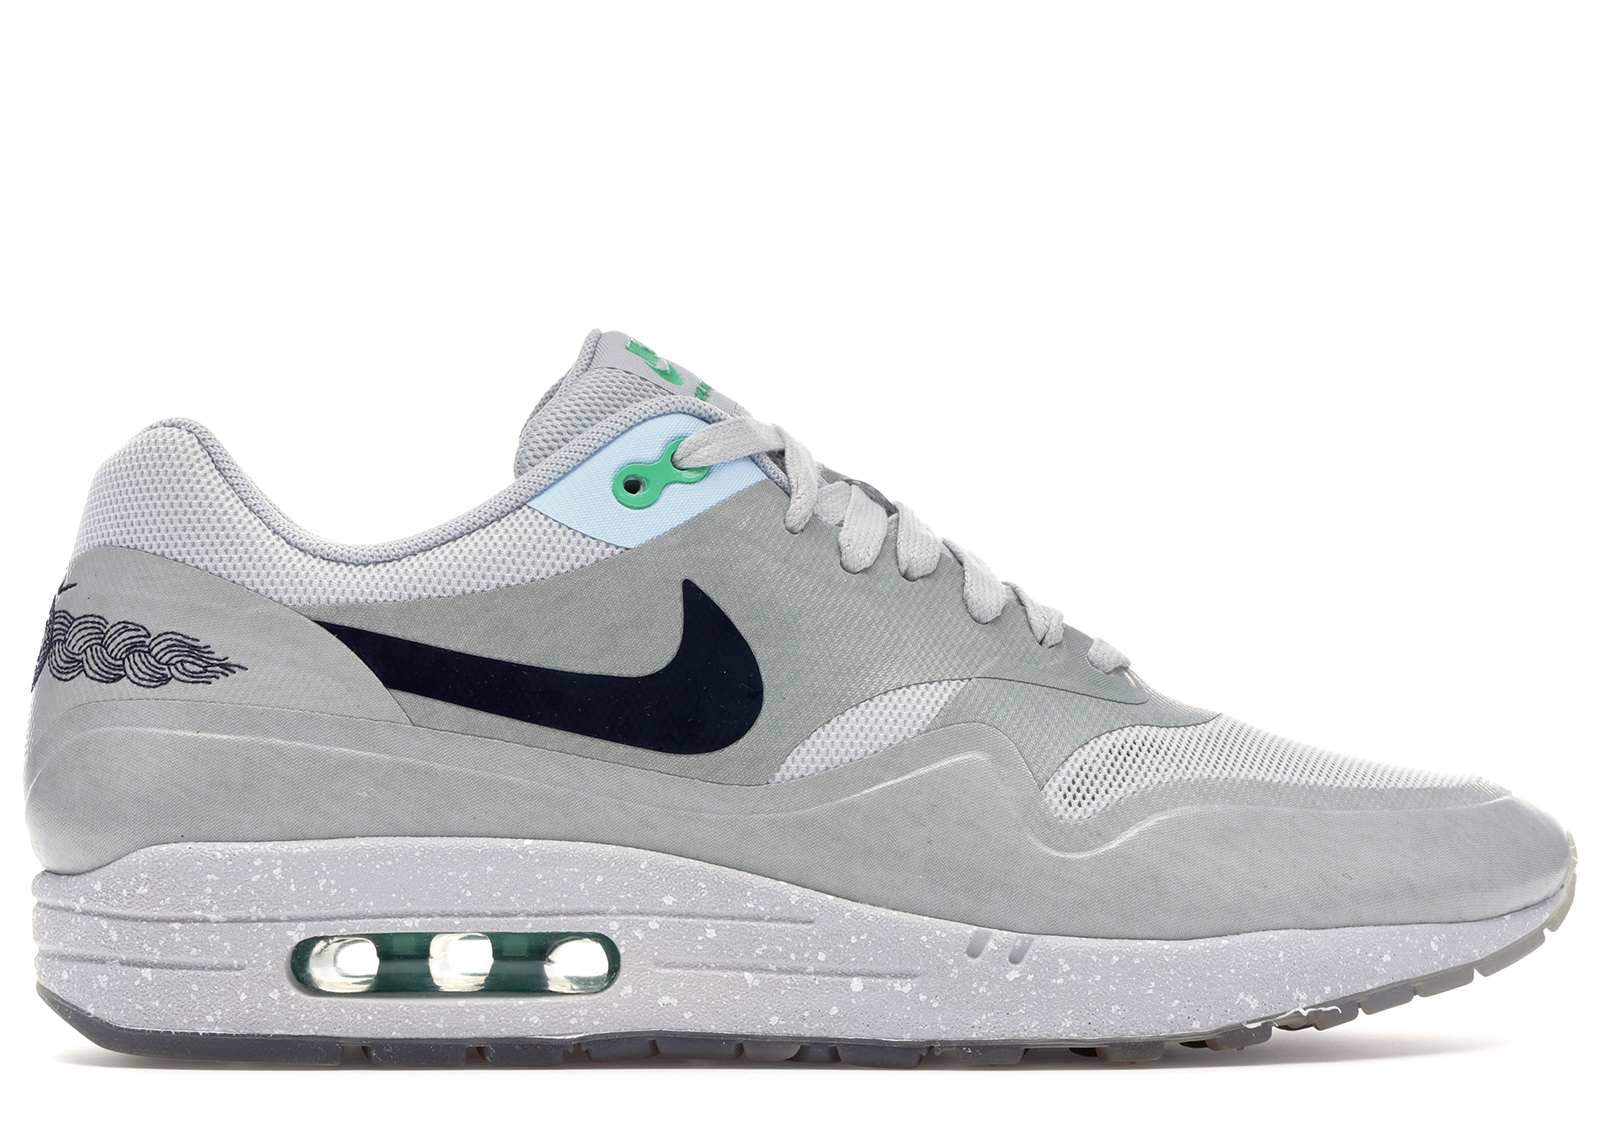 undefeated x high fashion lace up in Air Max 1 Sp Clot